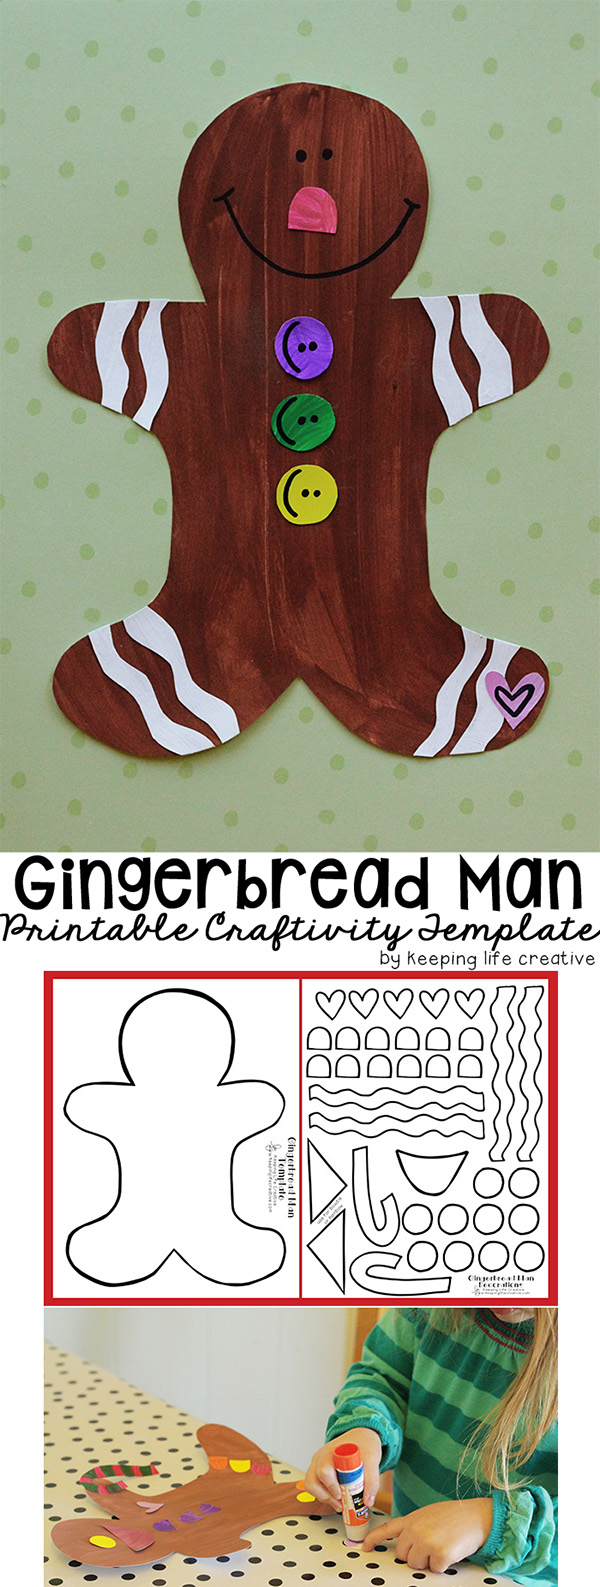 Gingerbread Man Craftivity makes a fun Christmas craft!